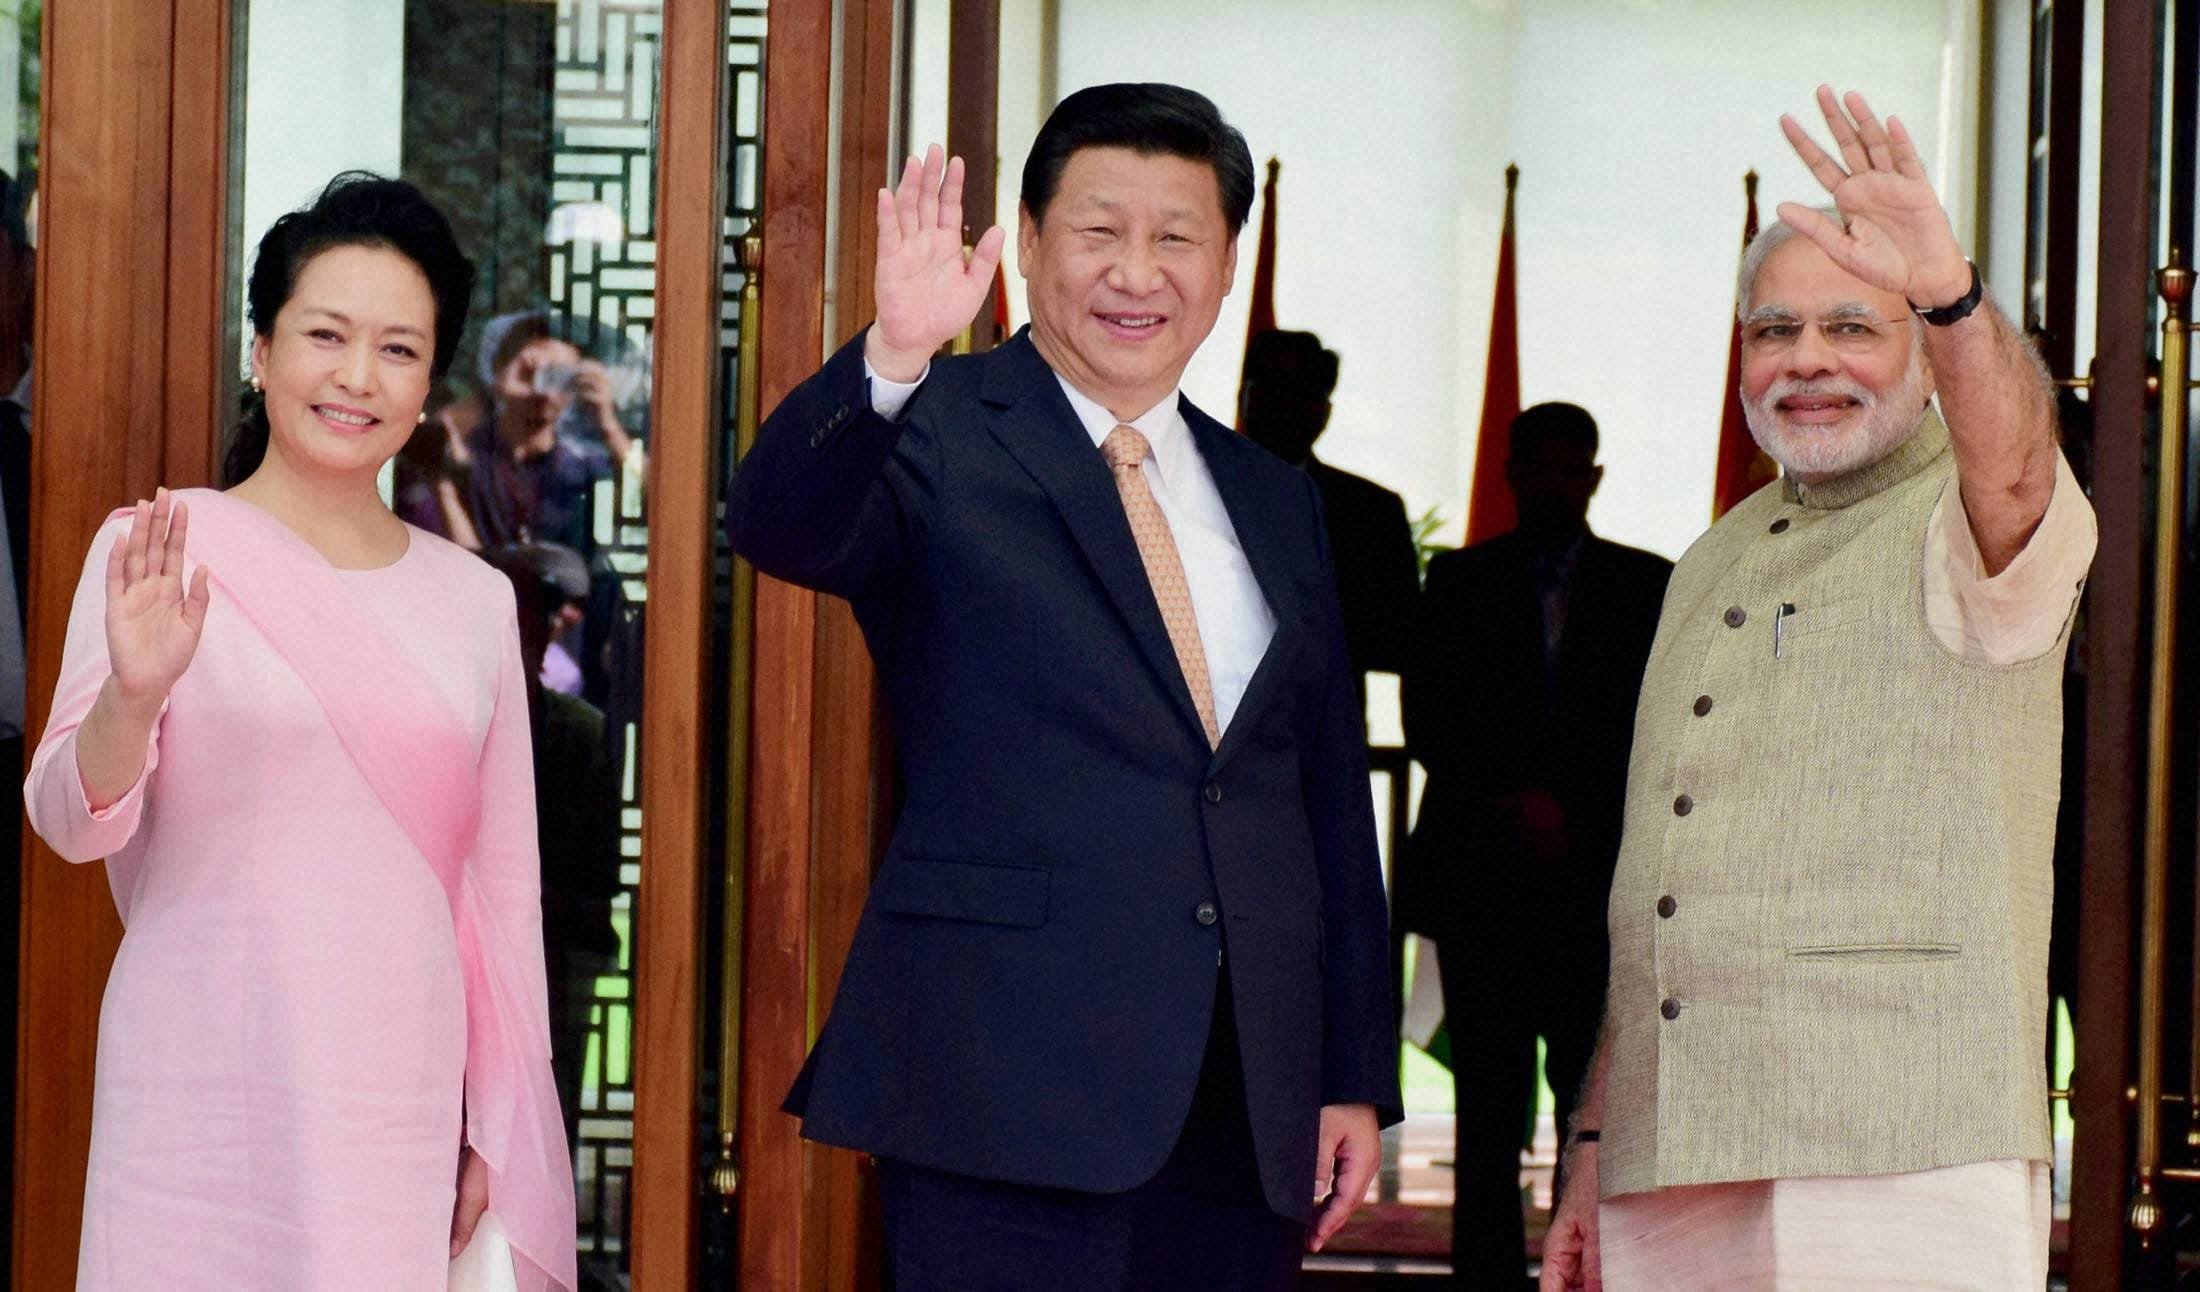 Prime Minister, Narendra Modi, welcomes, Chinese, President, Xi Jinping, upon, arrival, hotel, Ahmadabad